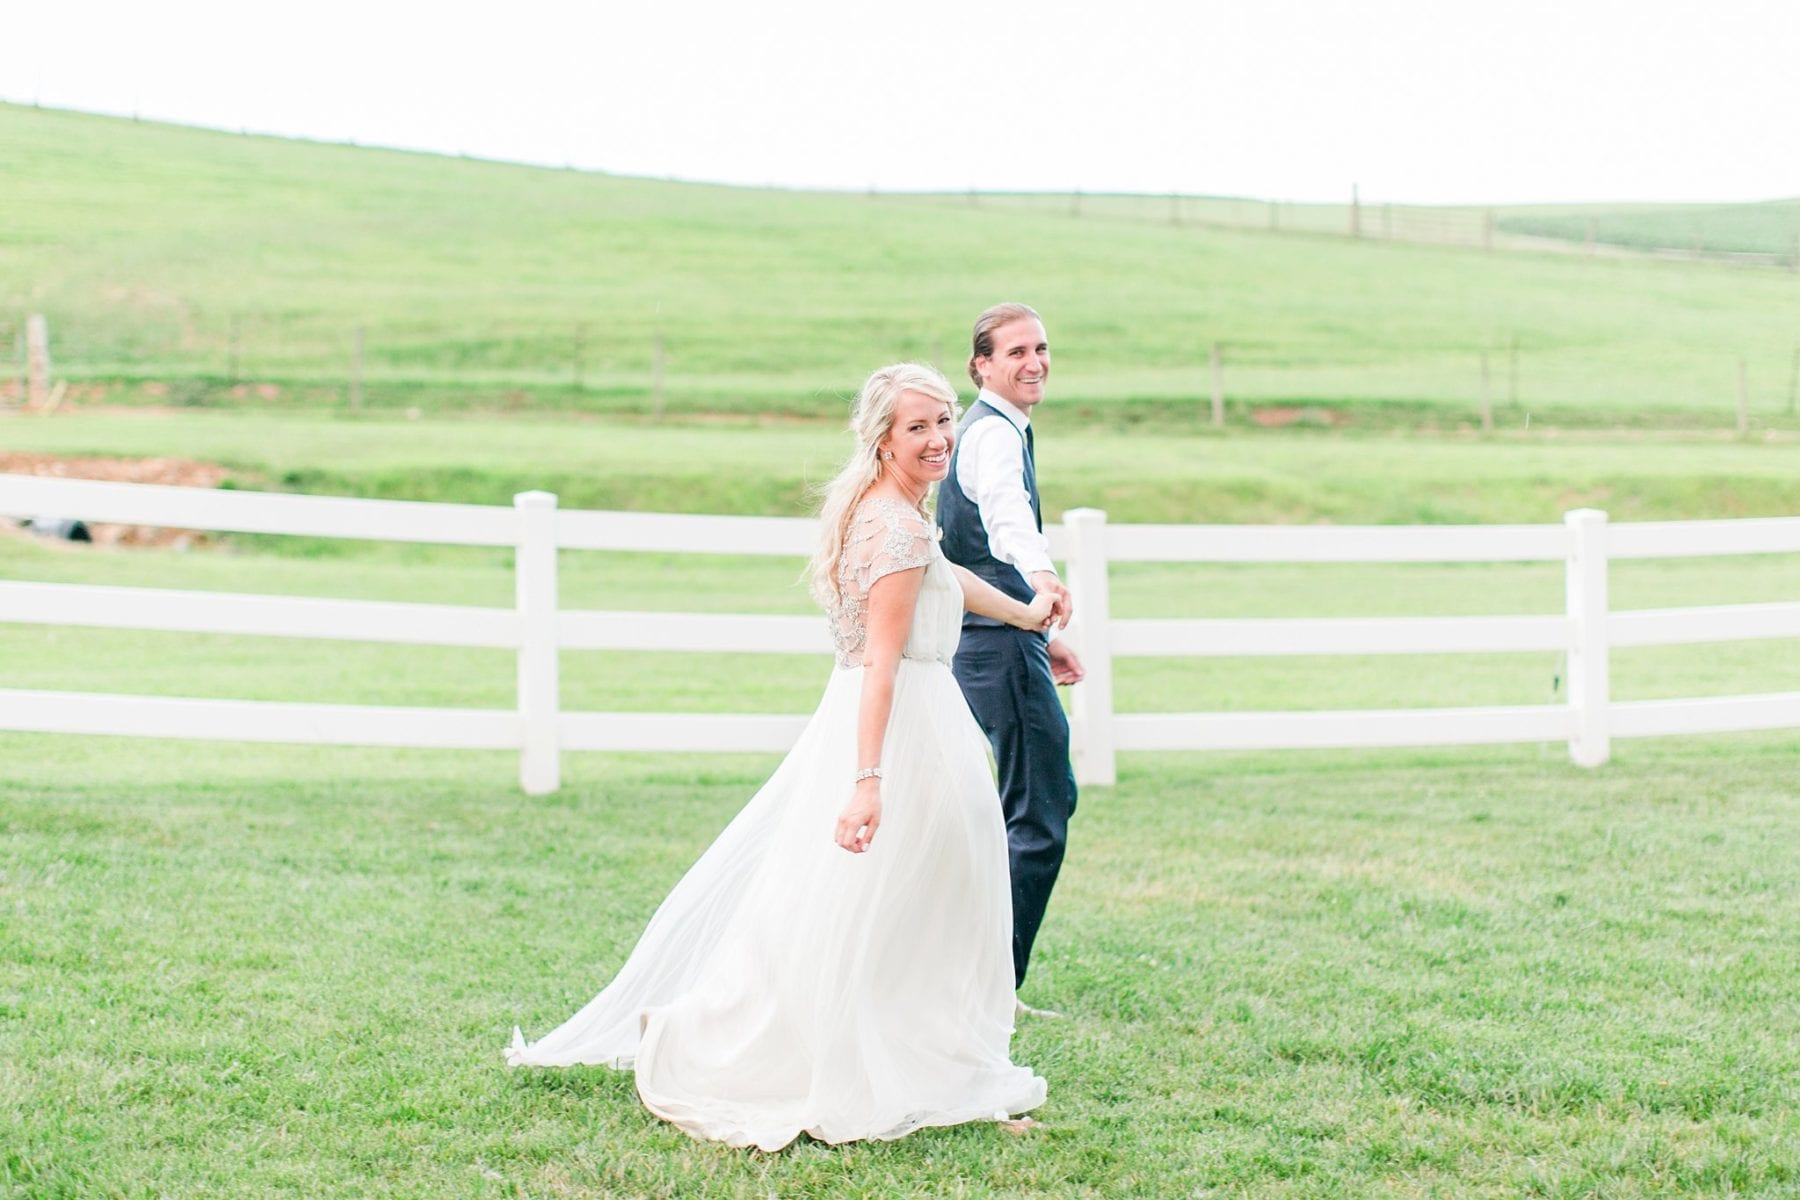 Pond View Farm Wedding Photos Maryland Wedding Photographer Kristen & Ryan Megan Kelsey Photography Blog-263.jpg